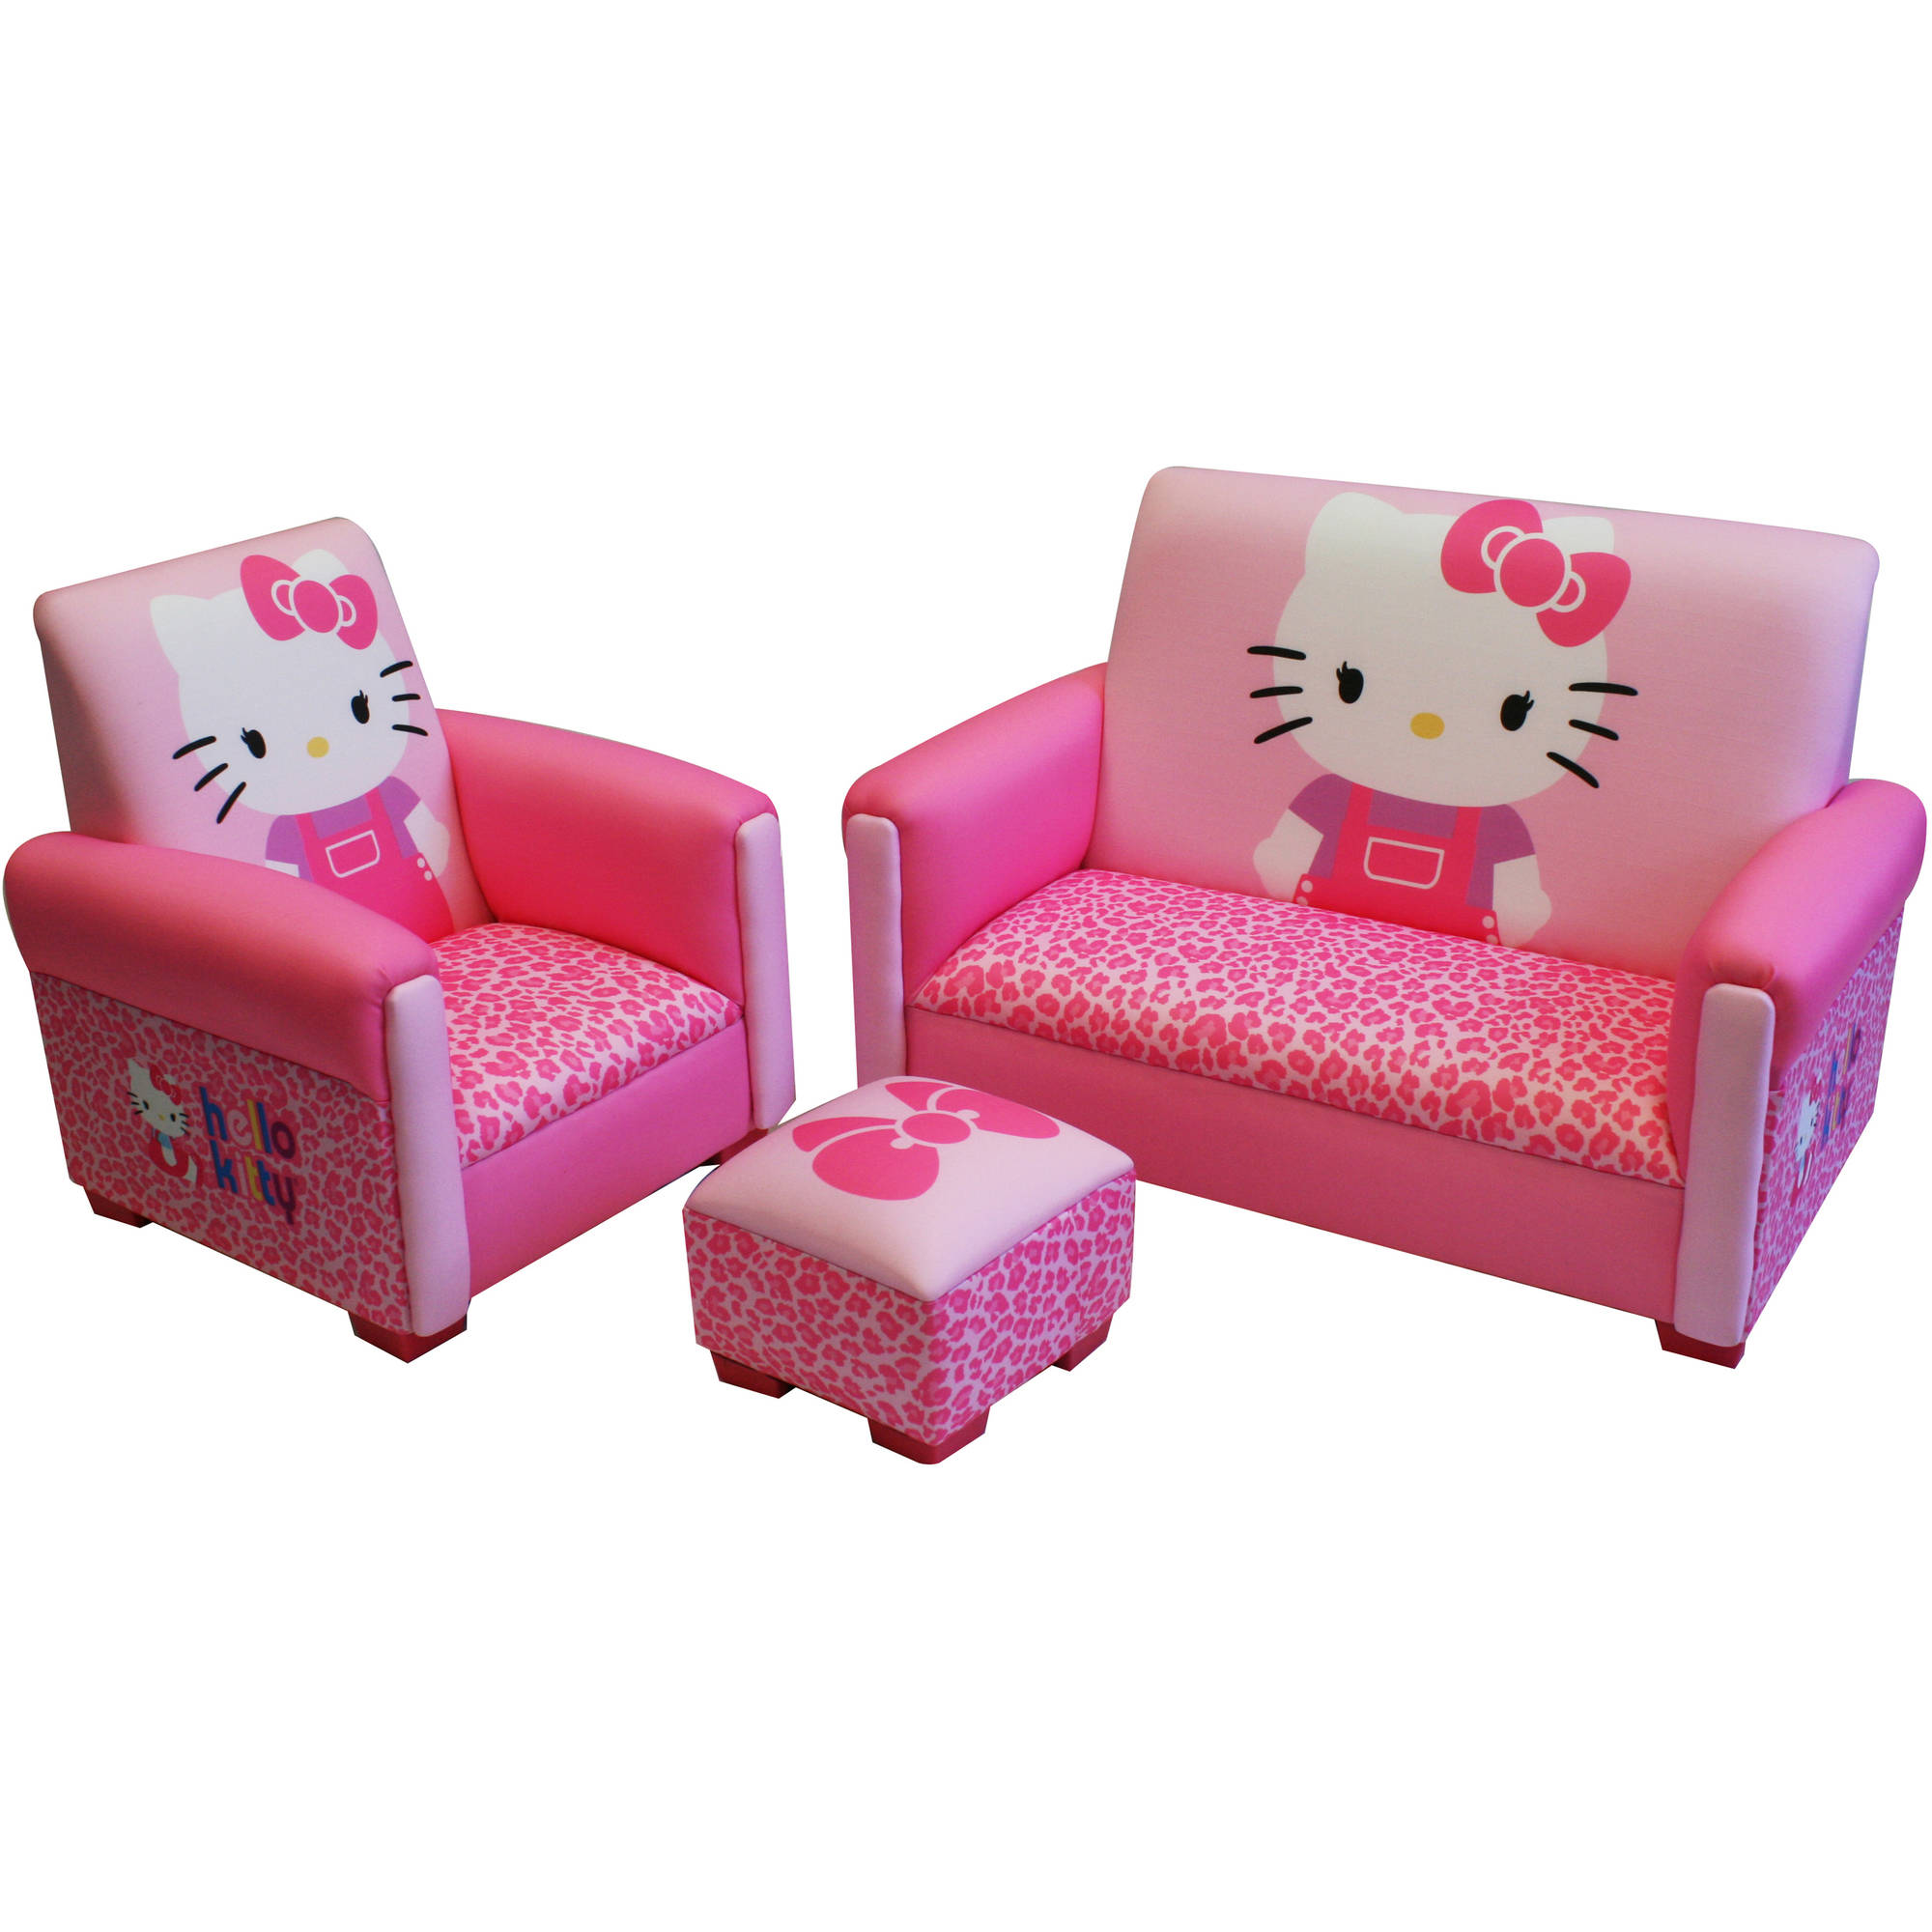 piece of minnie chairs chair best awesome set solutions mouse upholstered collection toddlers lovely images cute disney sofa couch for kids